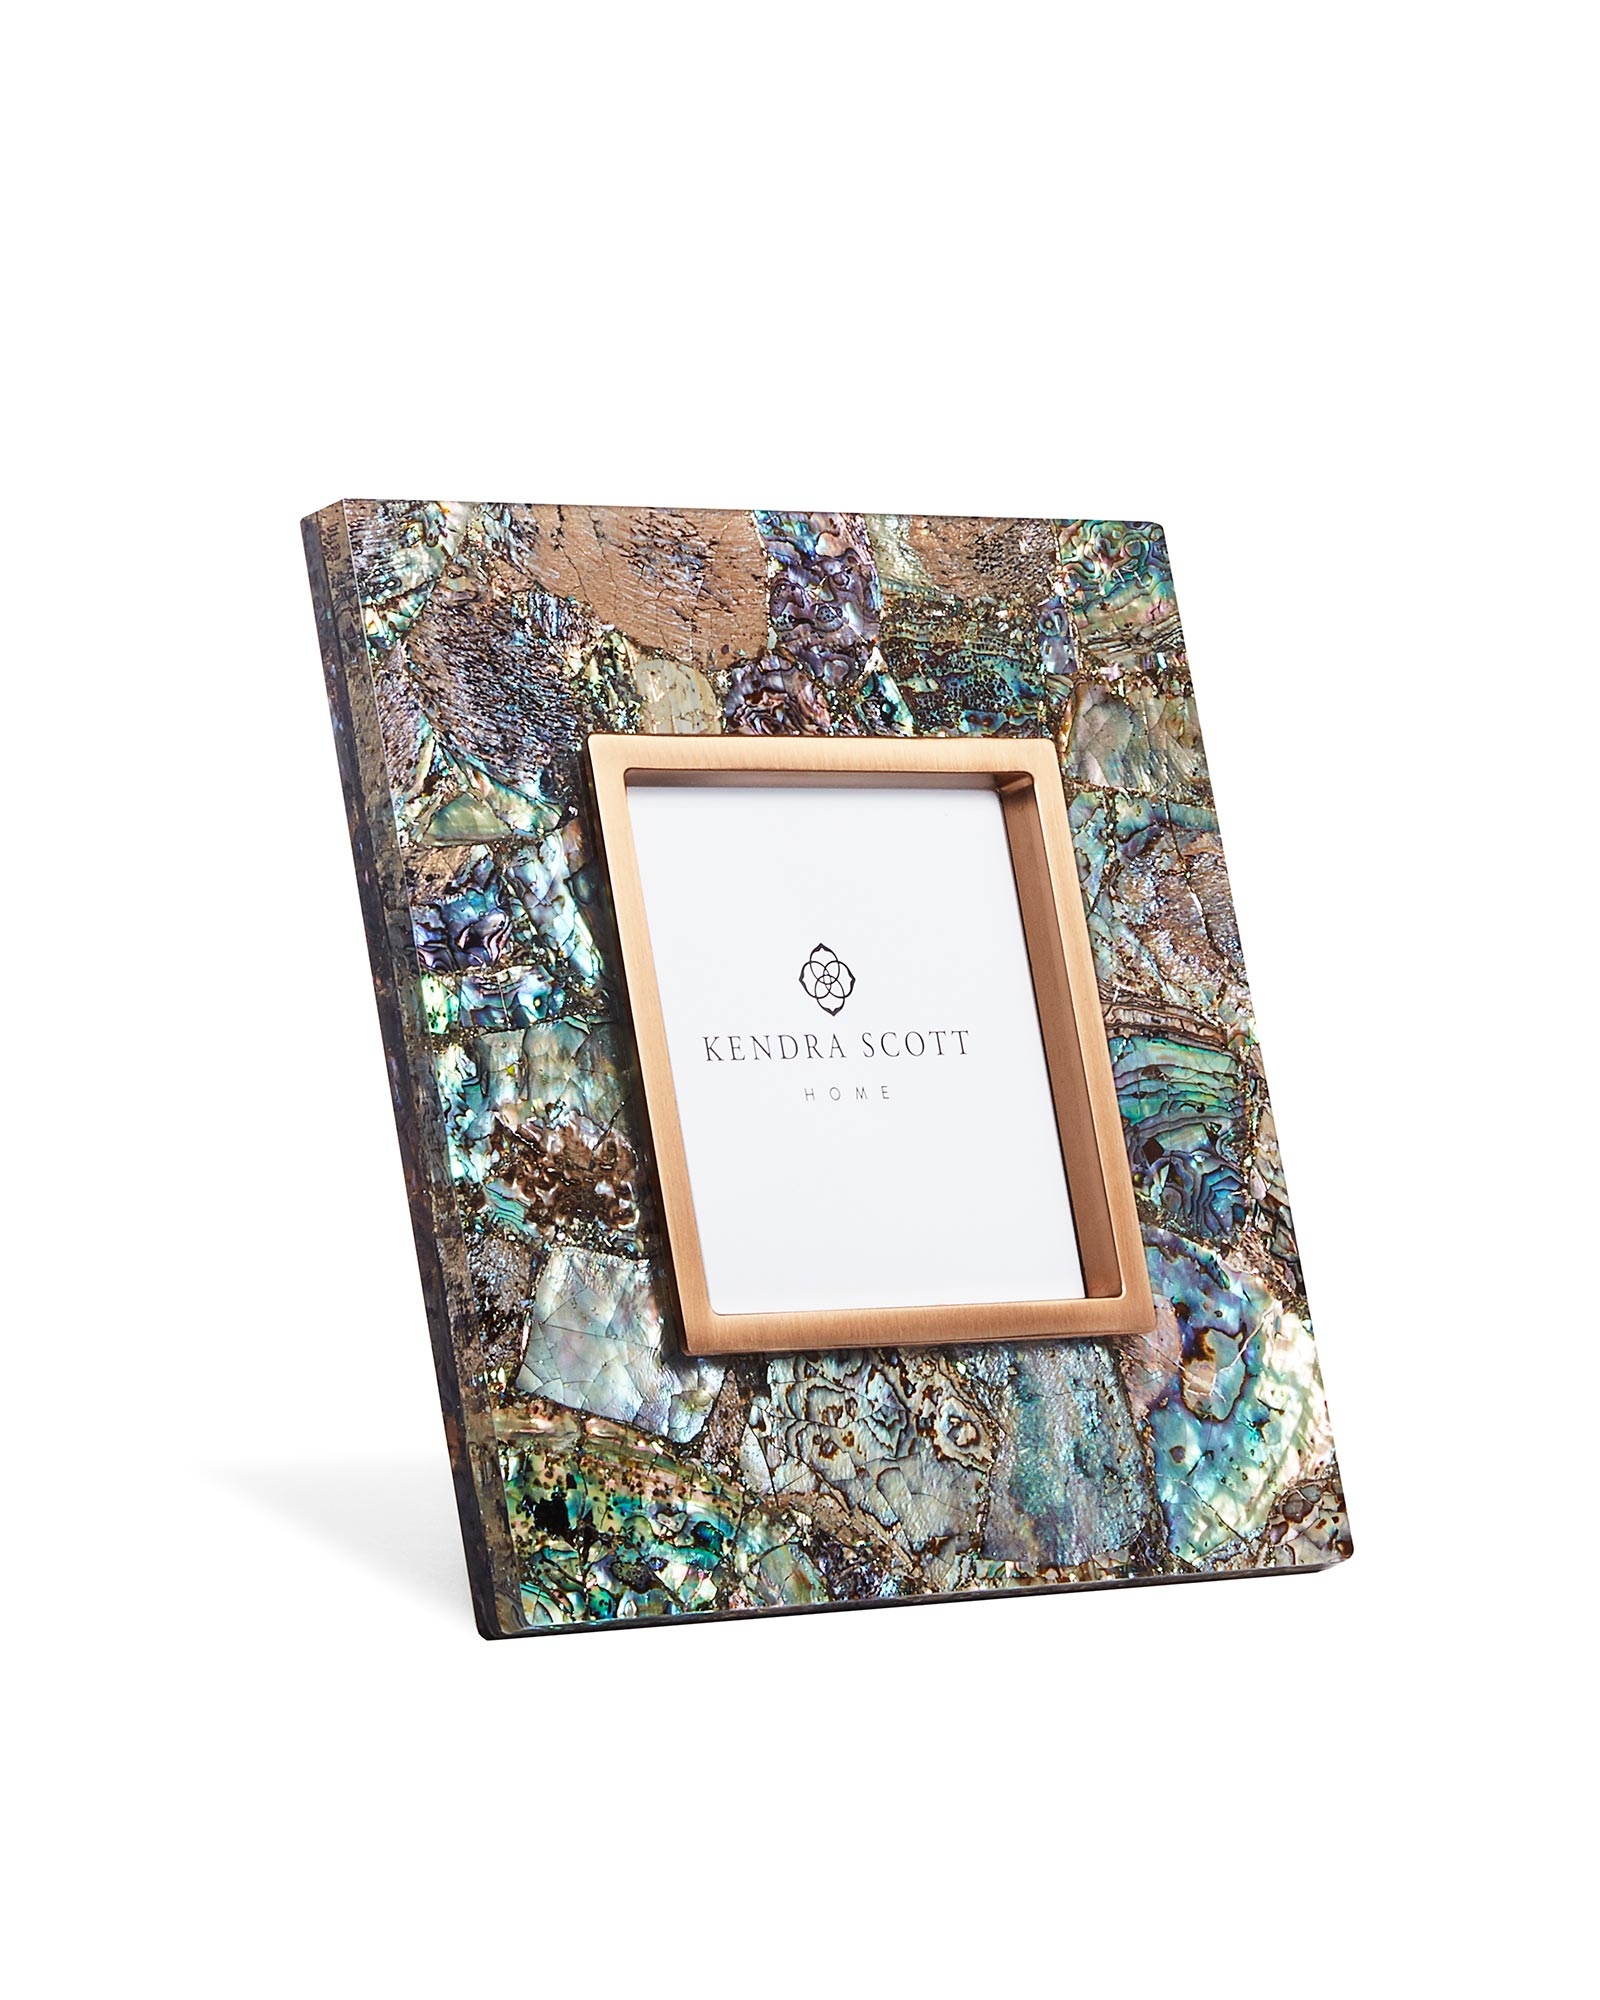 4x4 Photo Frame in Crackle Abalone Shell